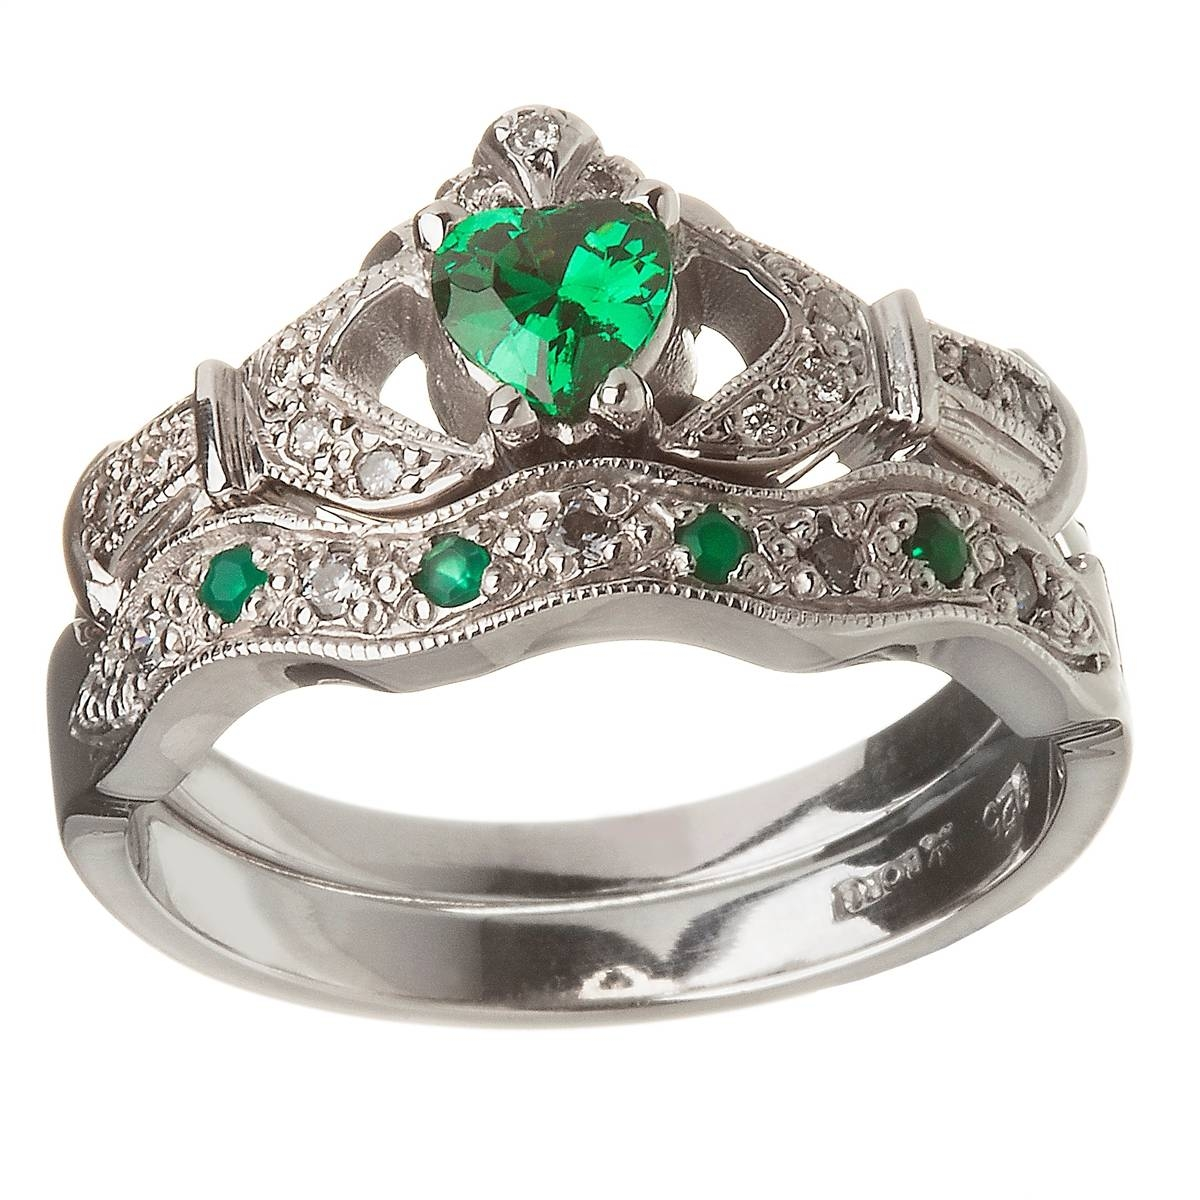 14k White Gold Emerald Set Heart Claddagh Ring & Wedding Ring Set Regarding Emerald Engagement Rings White Gold (View 8 of 15)